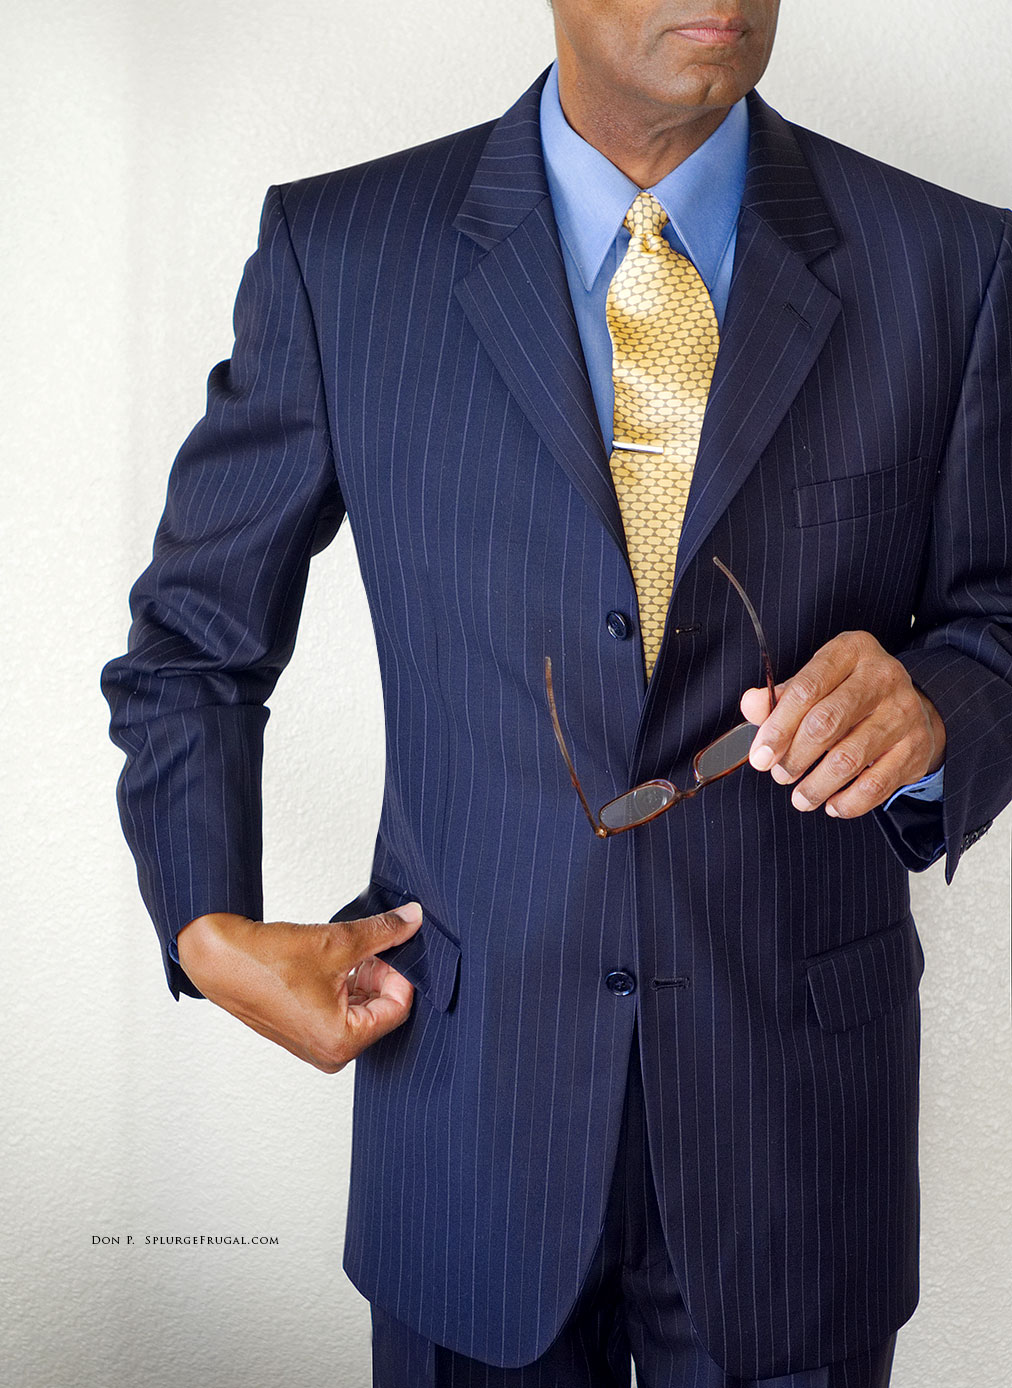 Why You Never Buy Cheap When Thrift Shopping Men's Suits